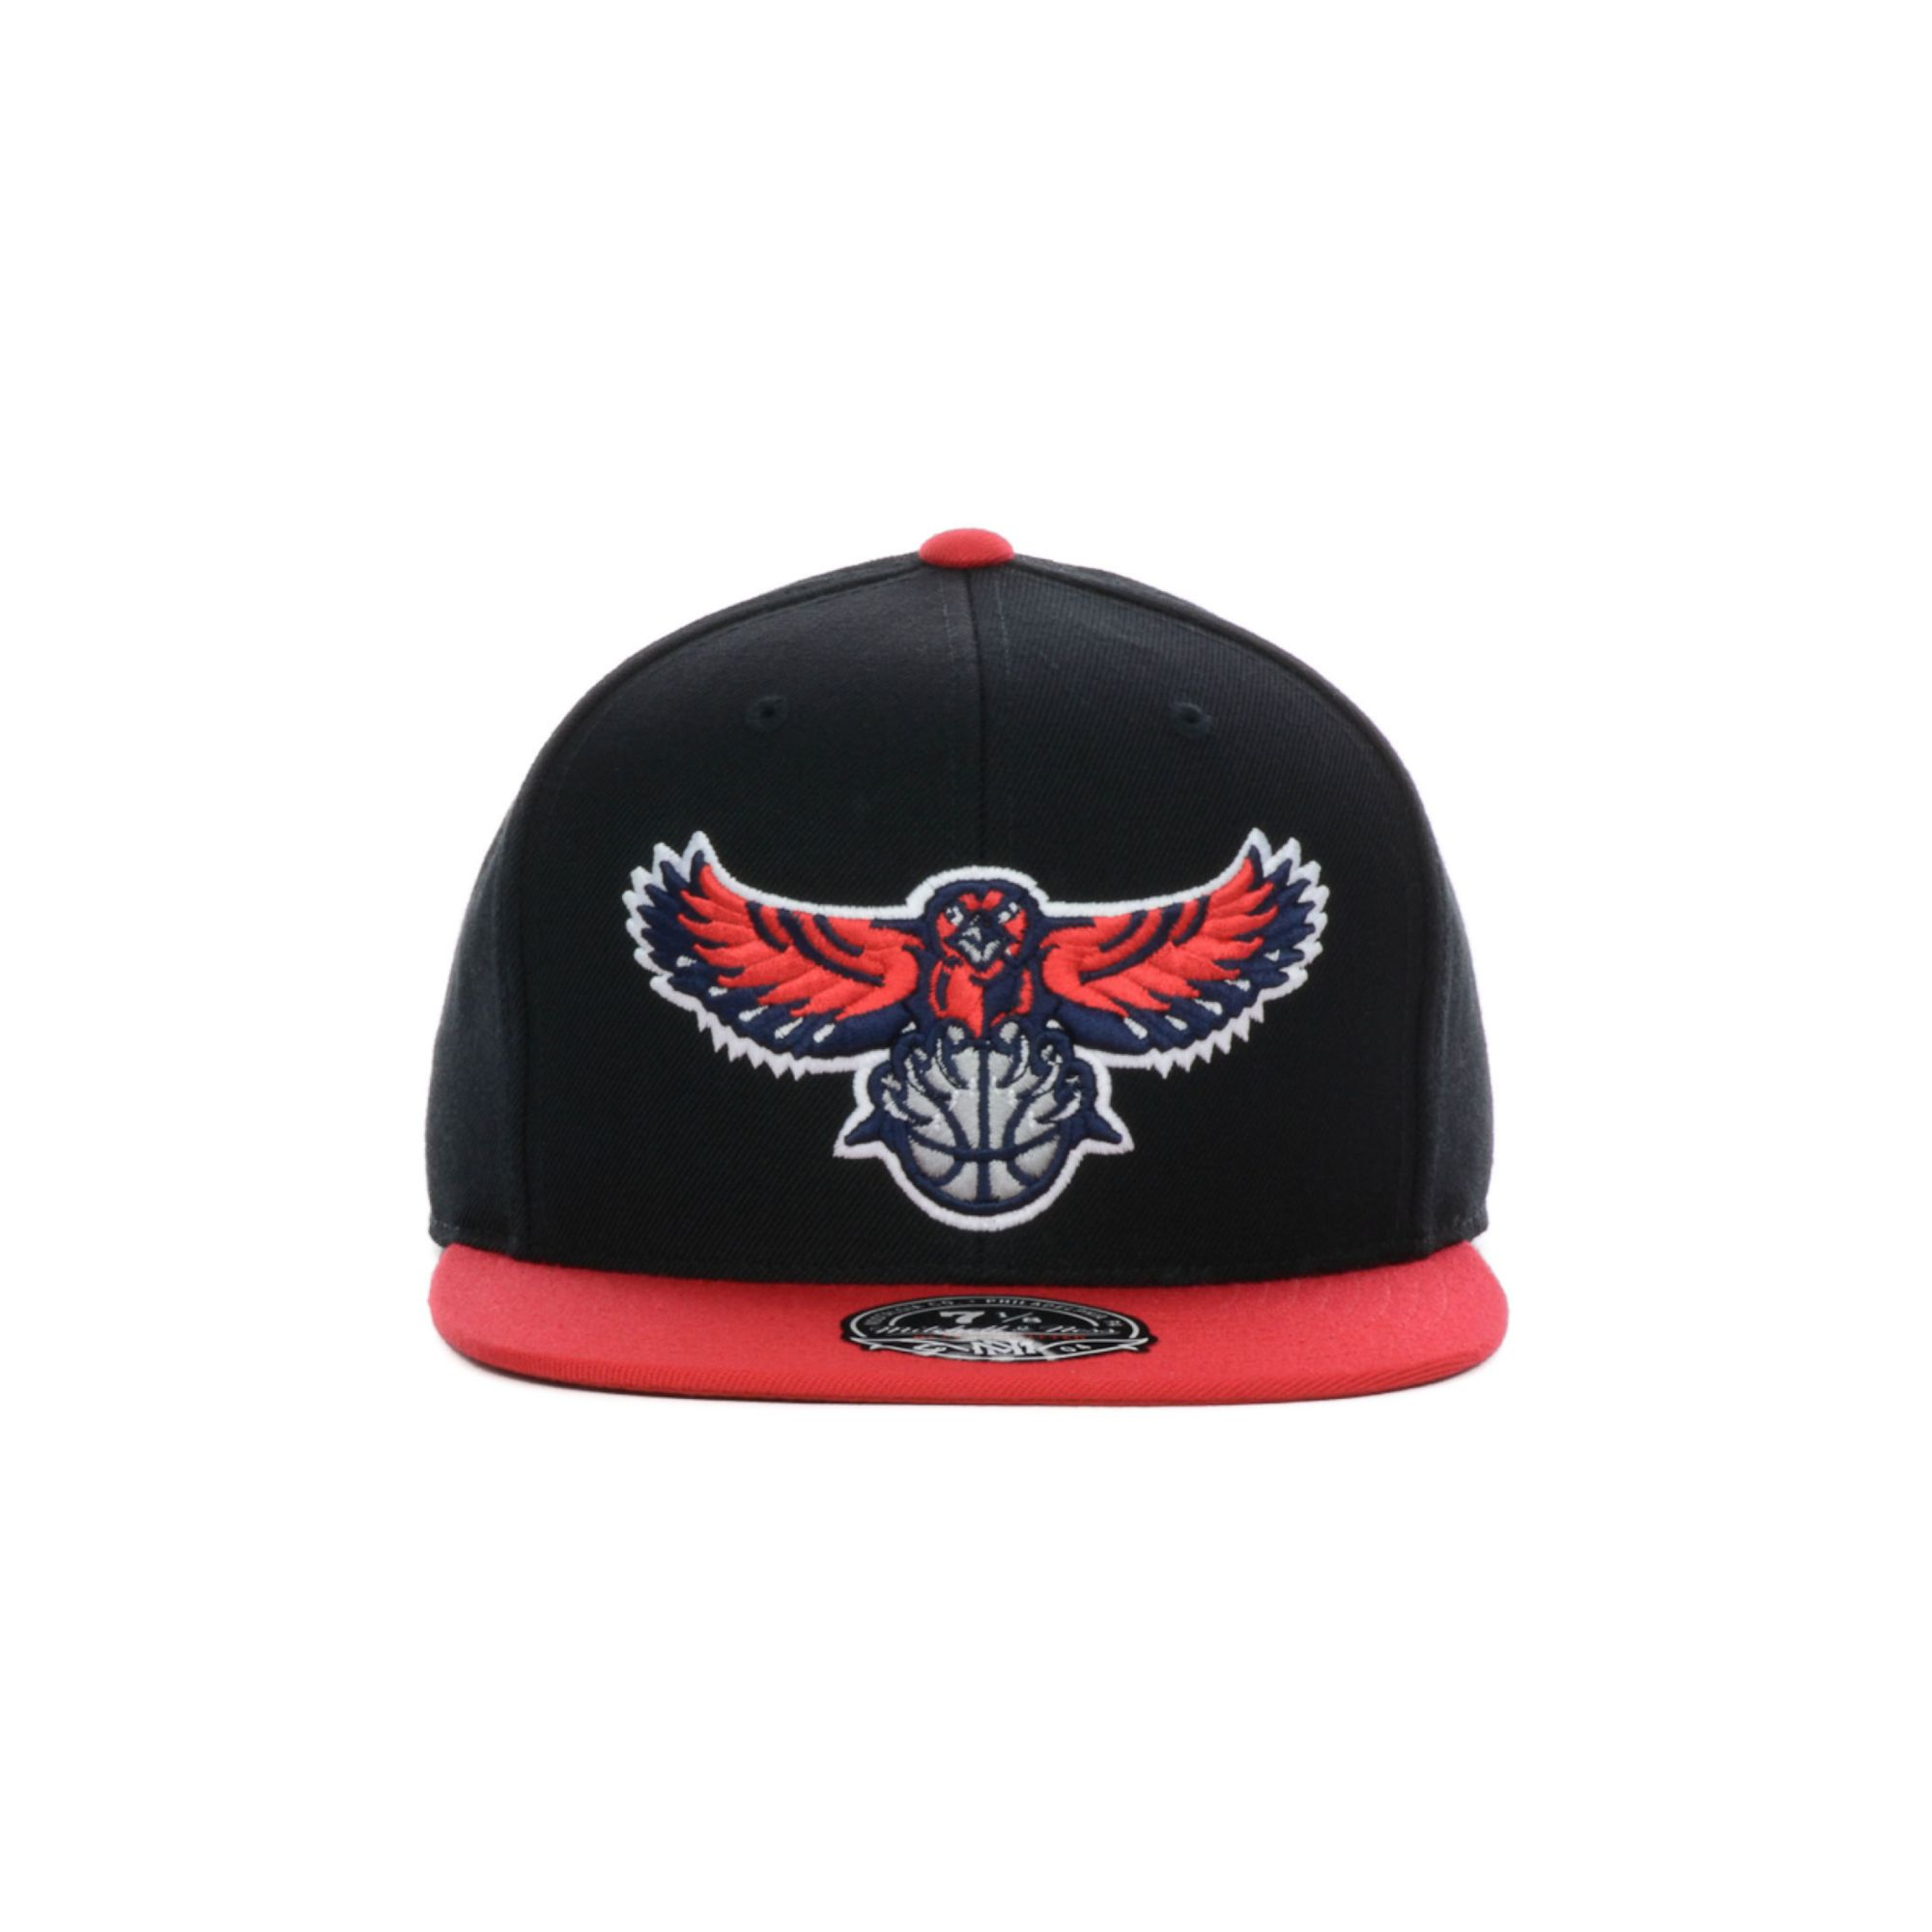 online store 91d1f c0963 ... ireland lyst nike mitchell ness atlanta hawks nba black 2 tone fitted  cap in red for